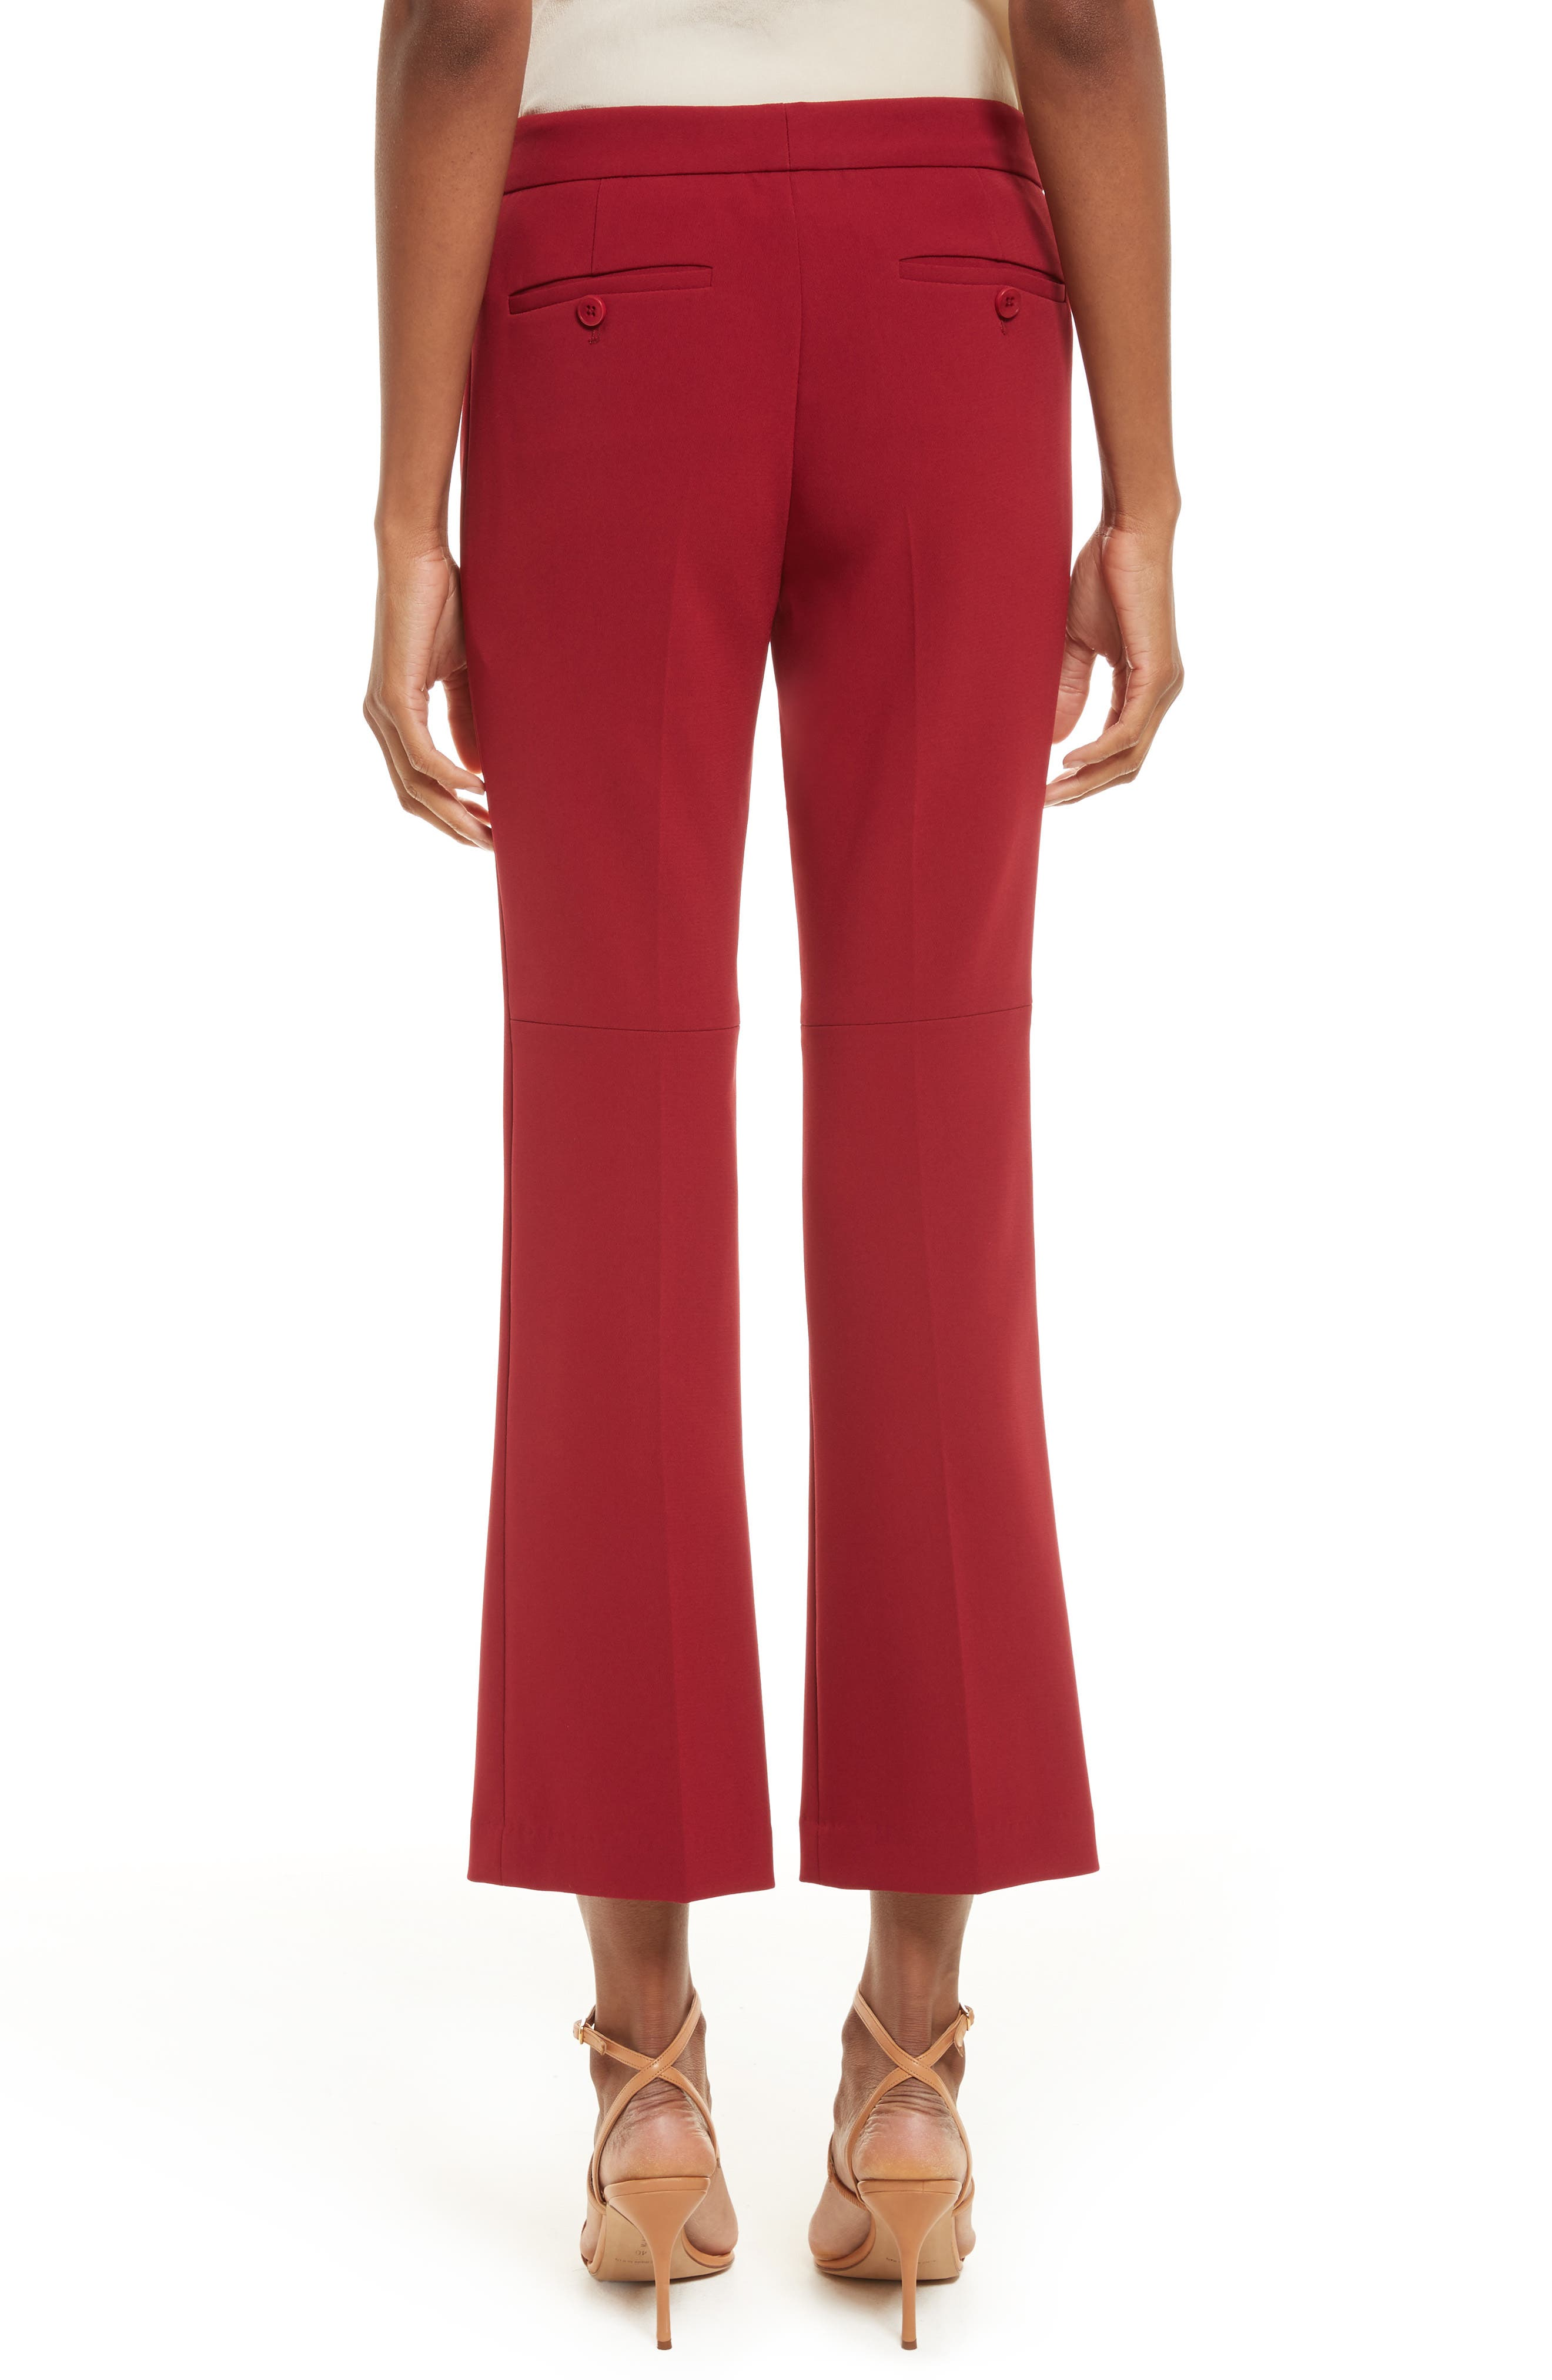 Admiral Crepe Kick Crop Pants,                             Alternate thumbnail 2, color,                             632